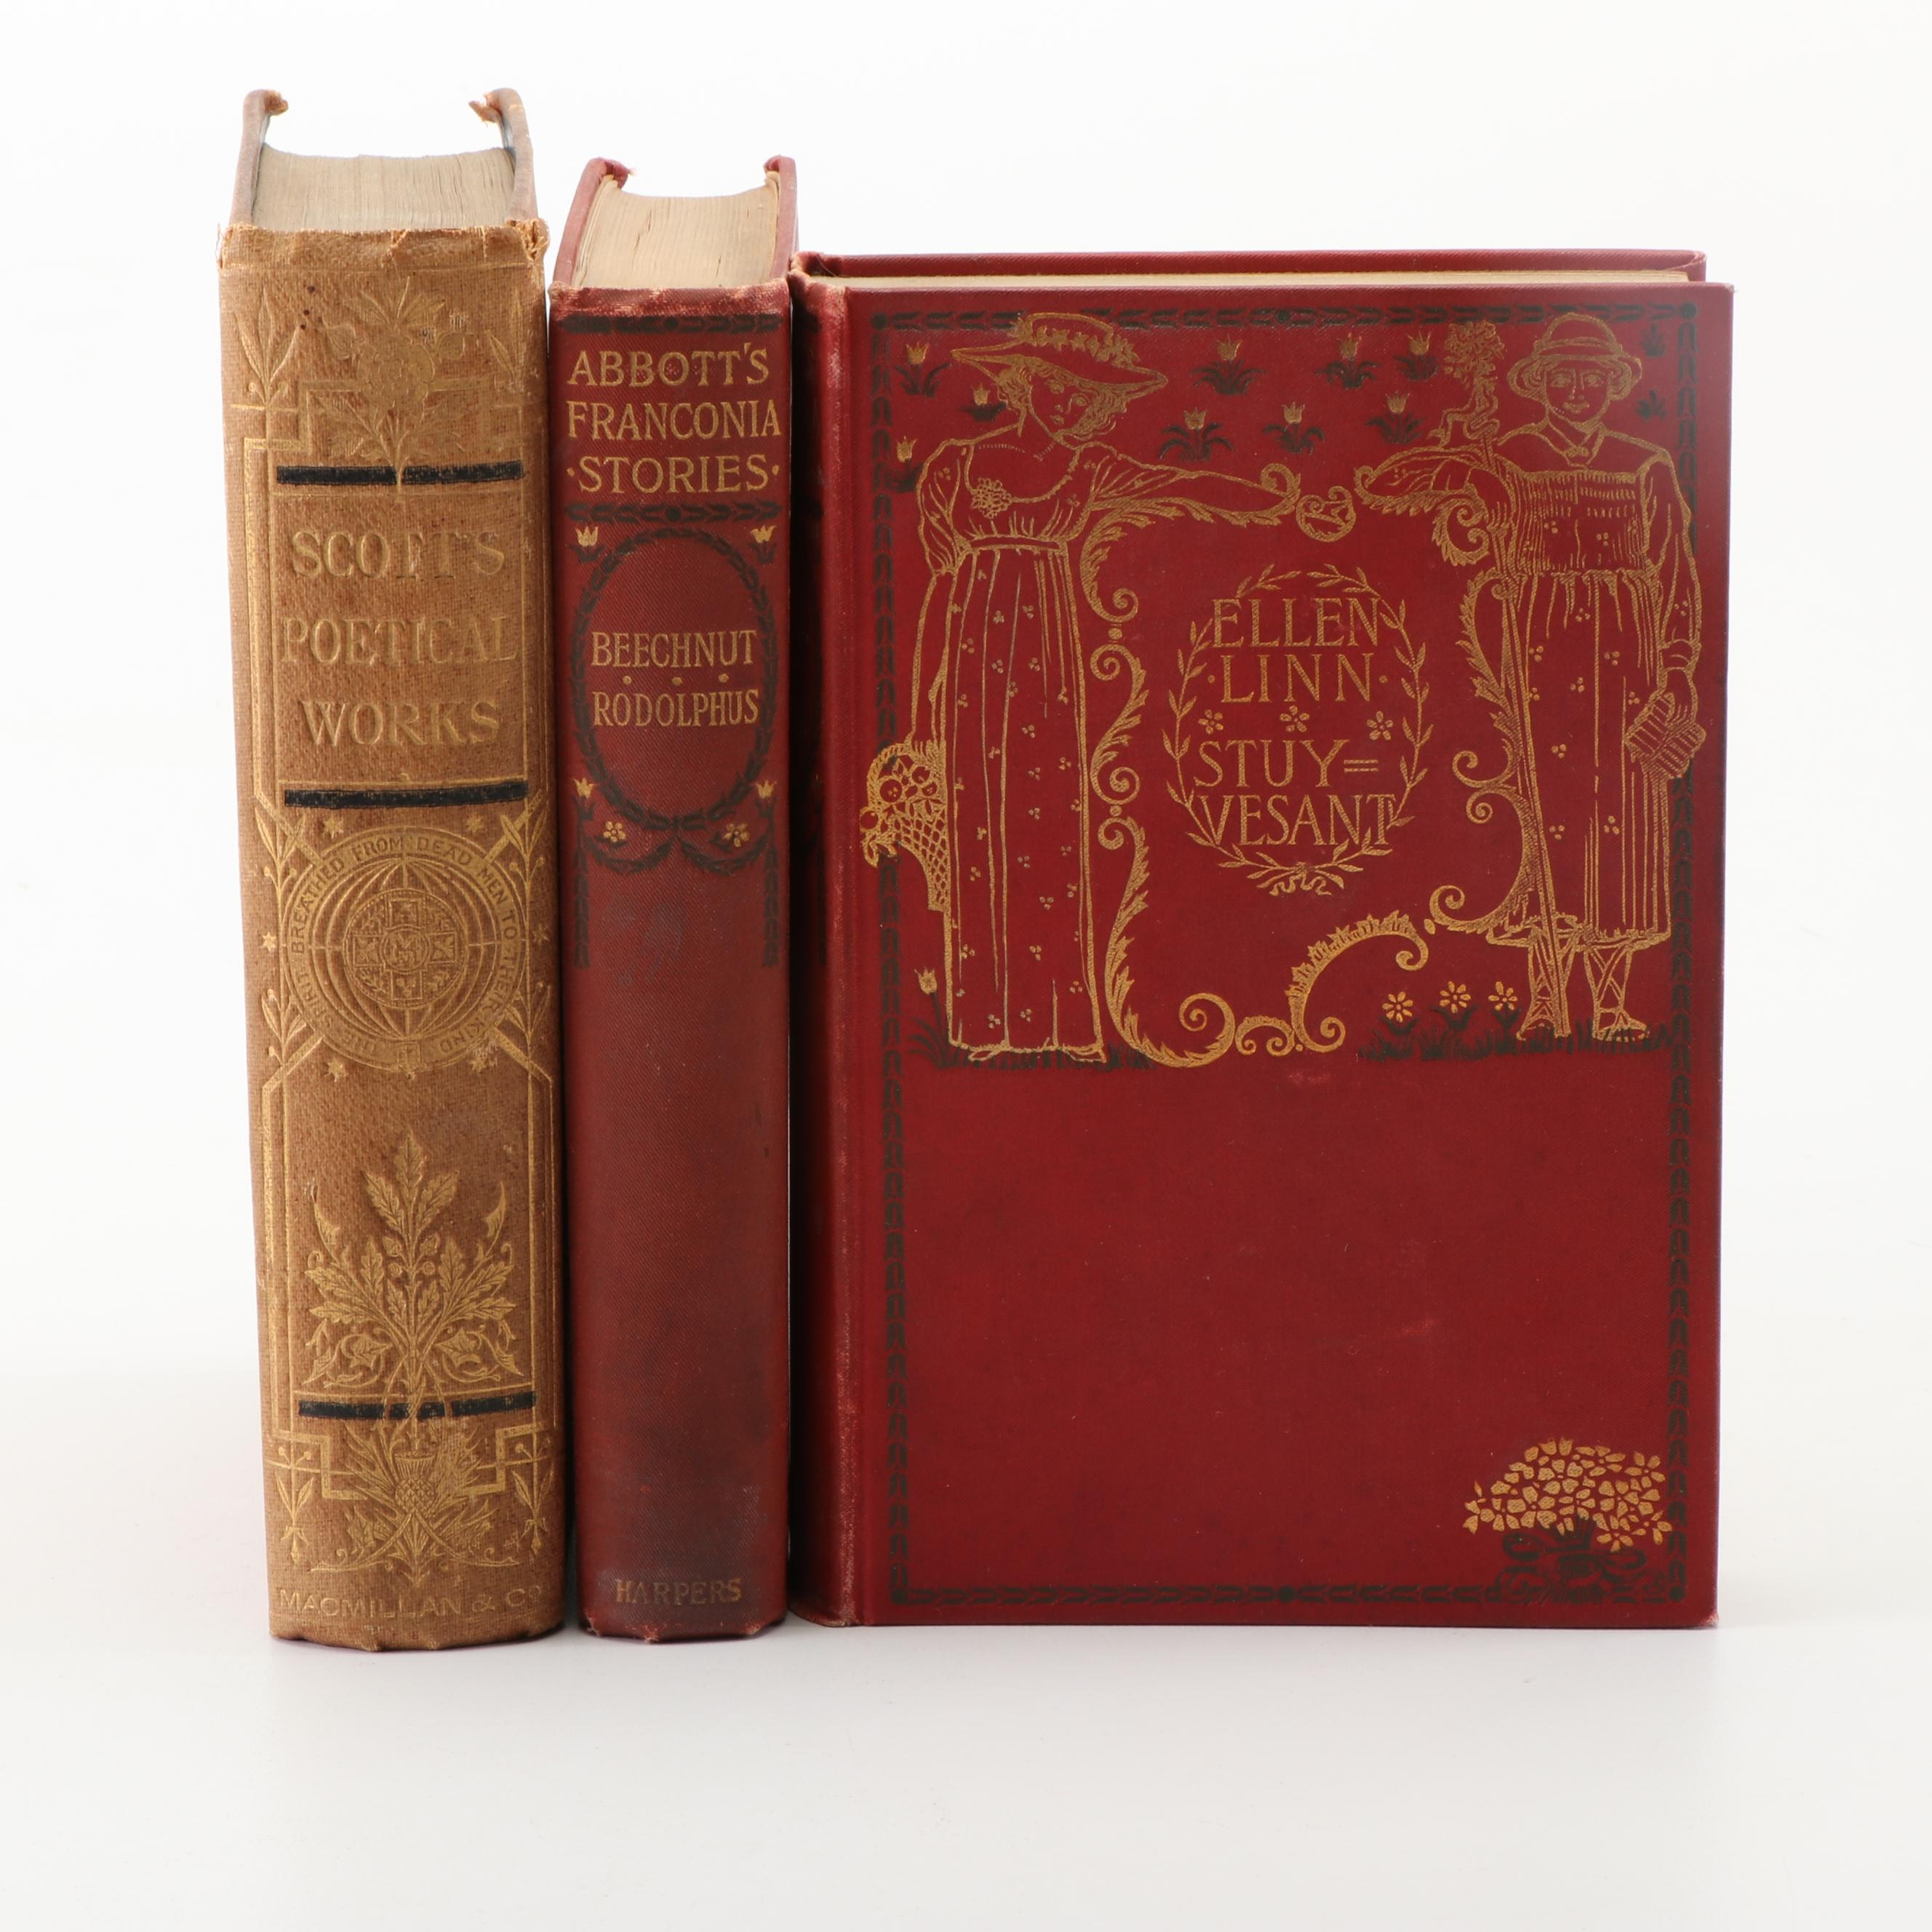 Late 19th Century Works by Jacob Abbott and Sir Walter Scott